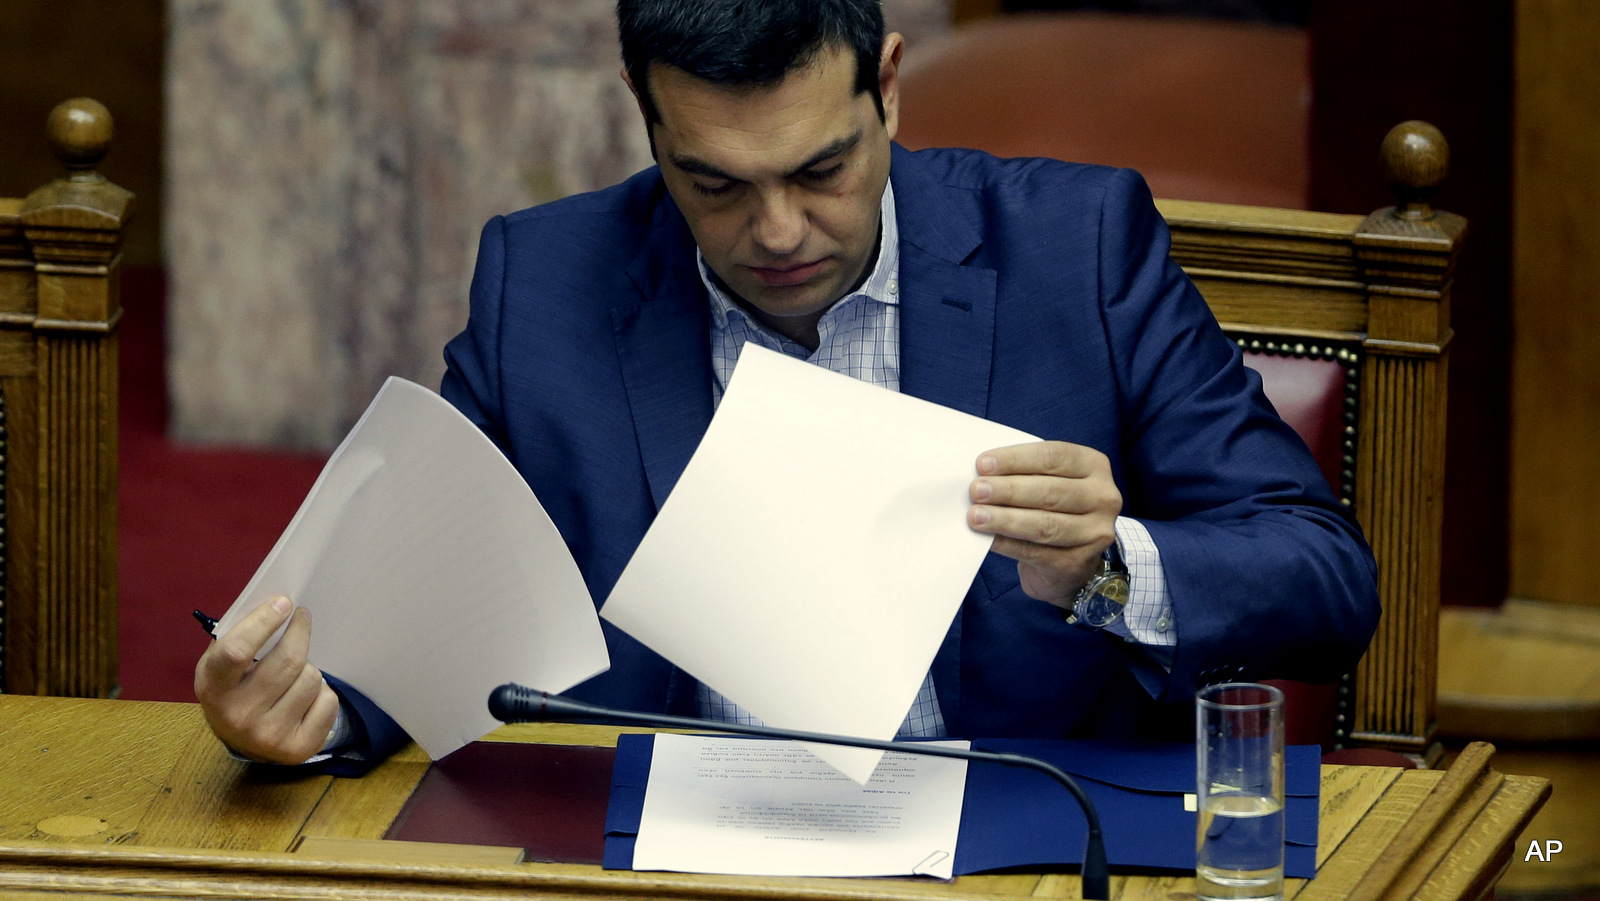 Greek Prime Minister Alexis Tsipras reads his notes as he prepares to answer opposition questions in parliament in Athens, on Friday, July 31, 2015.